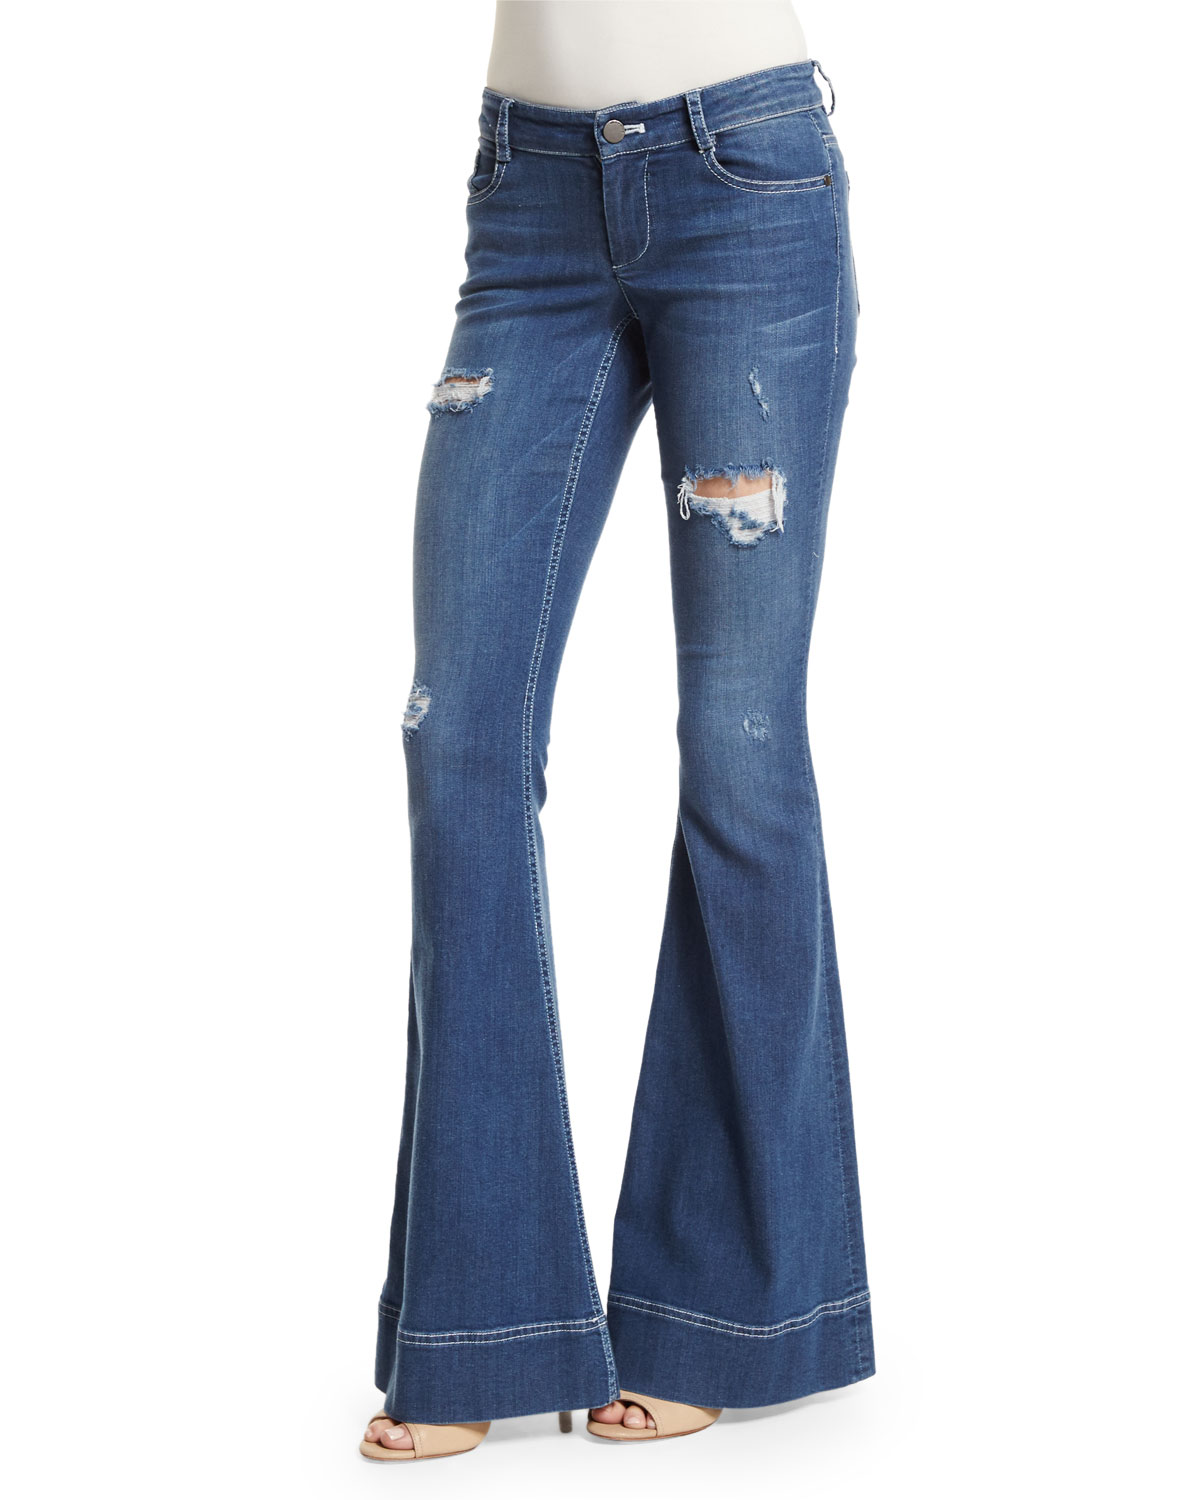 Alice + Olivia Ryley Distressed Flare Jeans, Light Blue, Size: 28